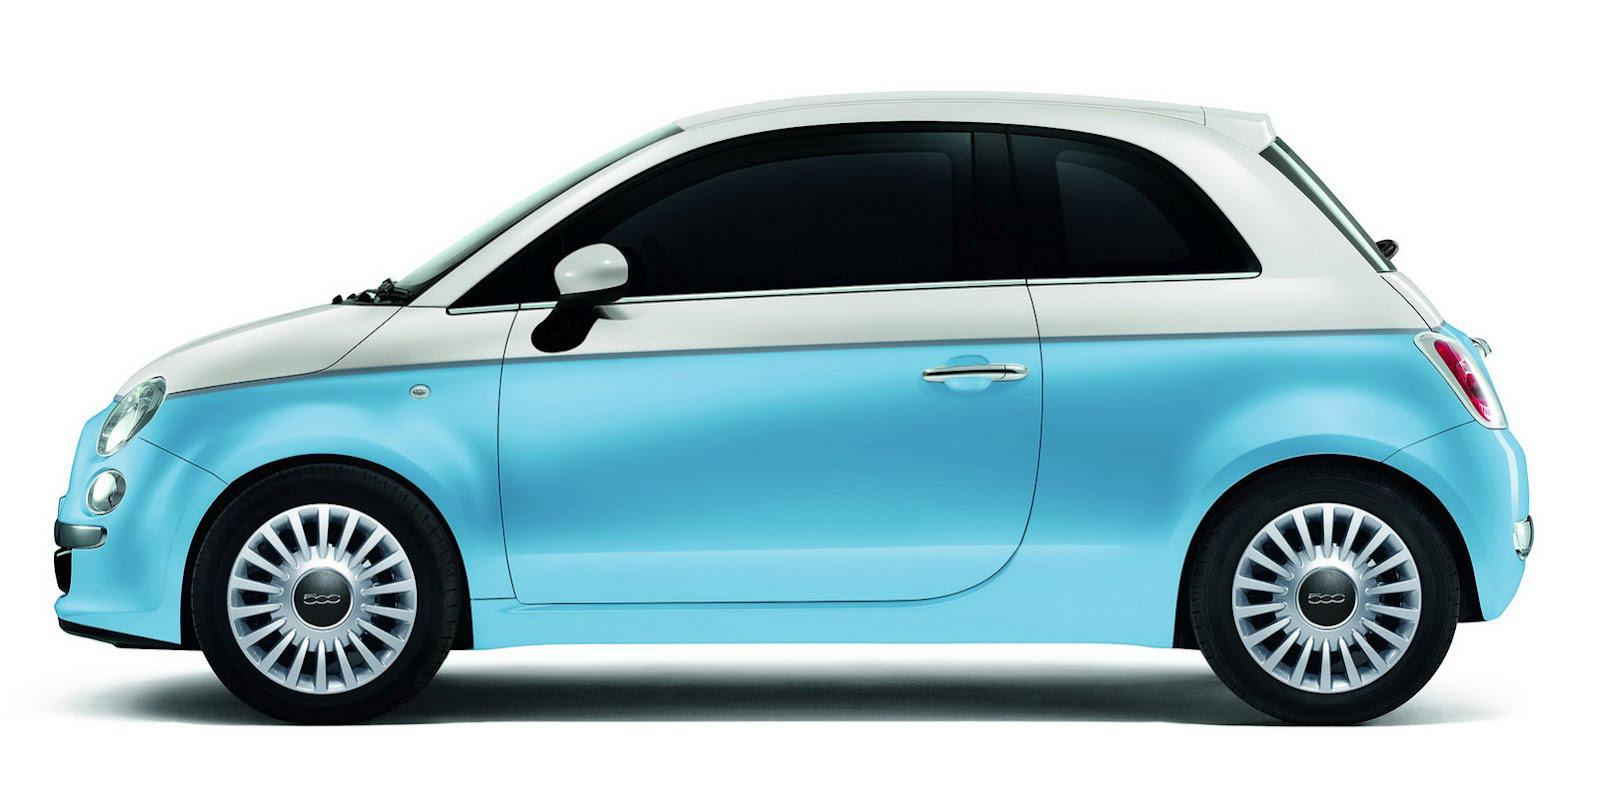 fiat 500, cute, fun, combines design and emotion